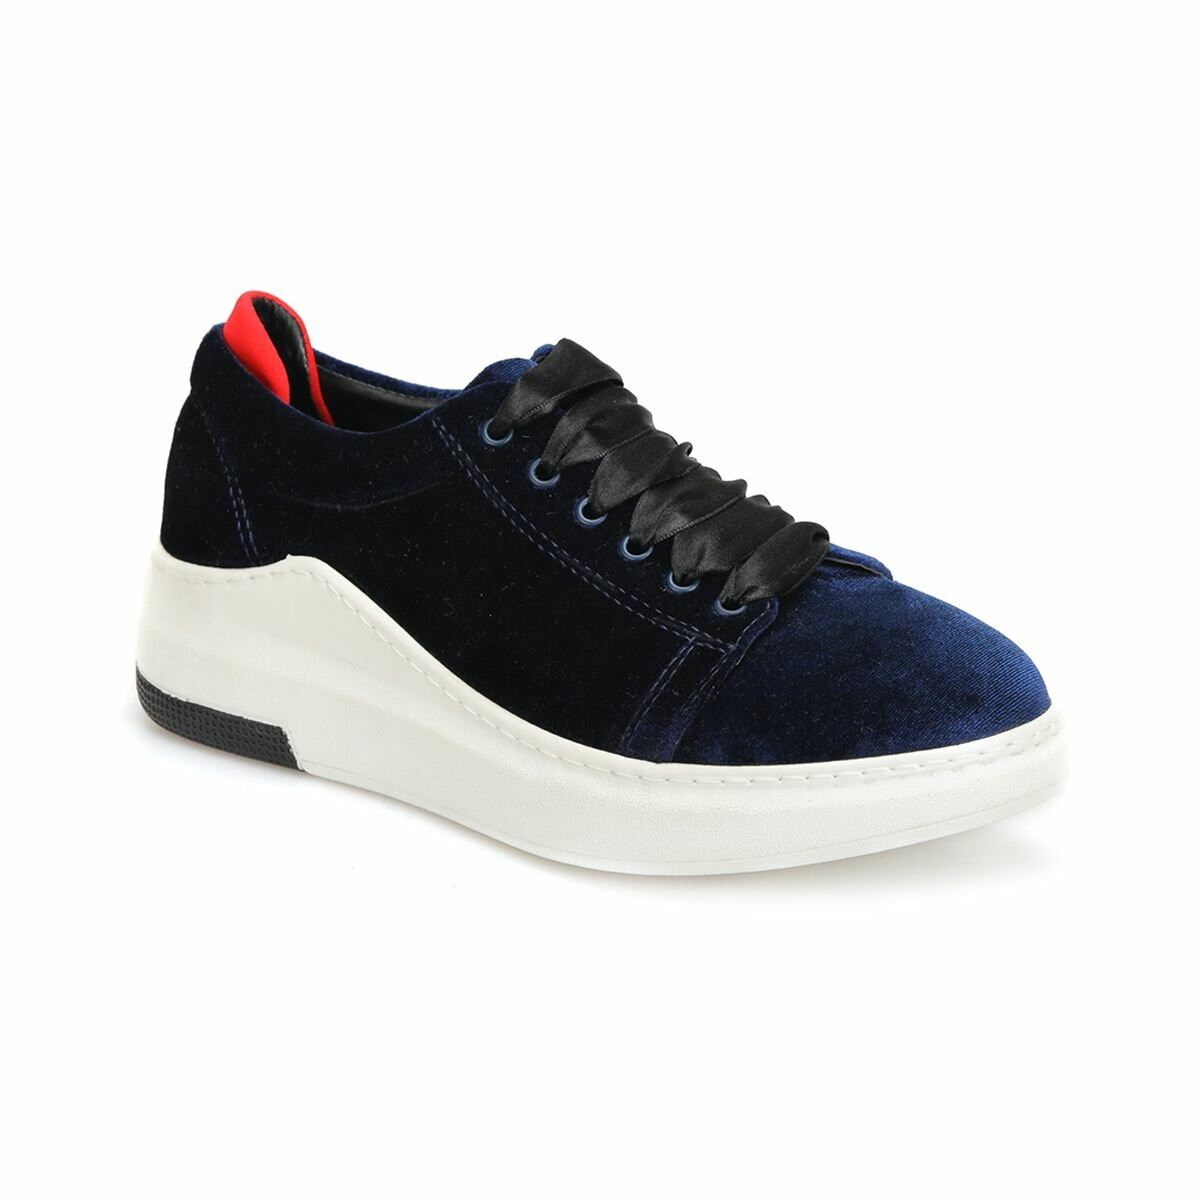 FLO 18K-261 Navy Blue Women 'S Sneaker Shoes BUTIGO